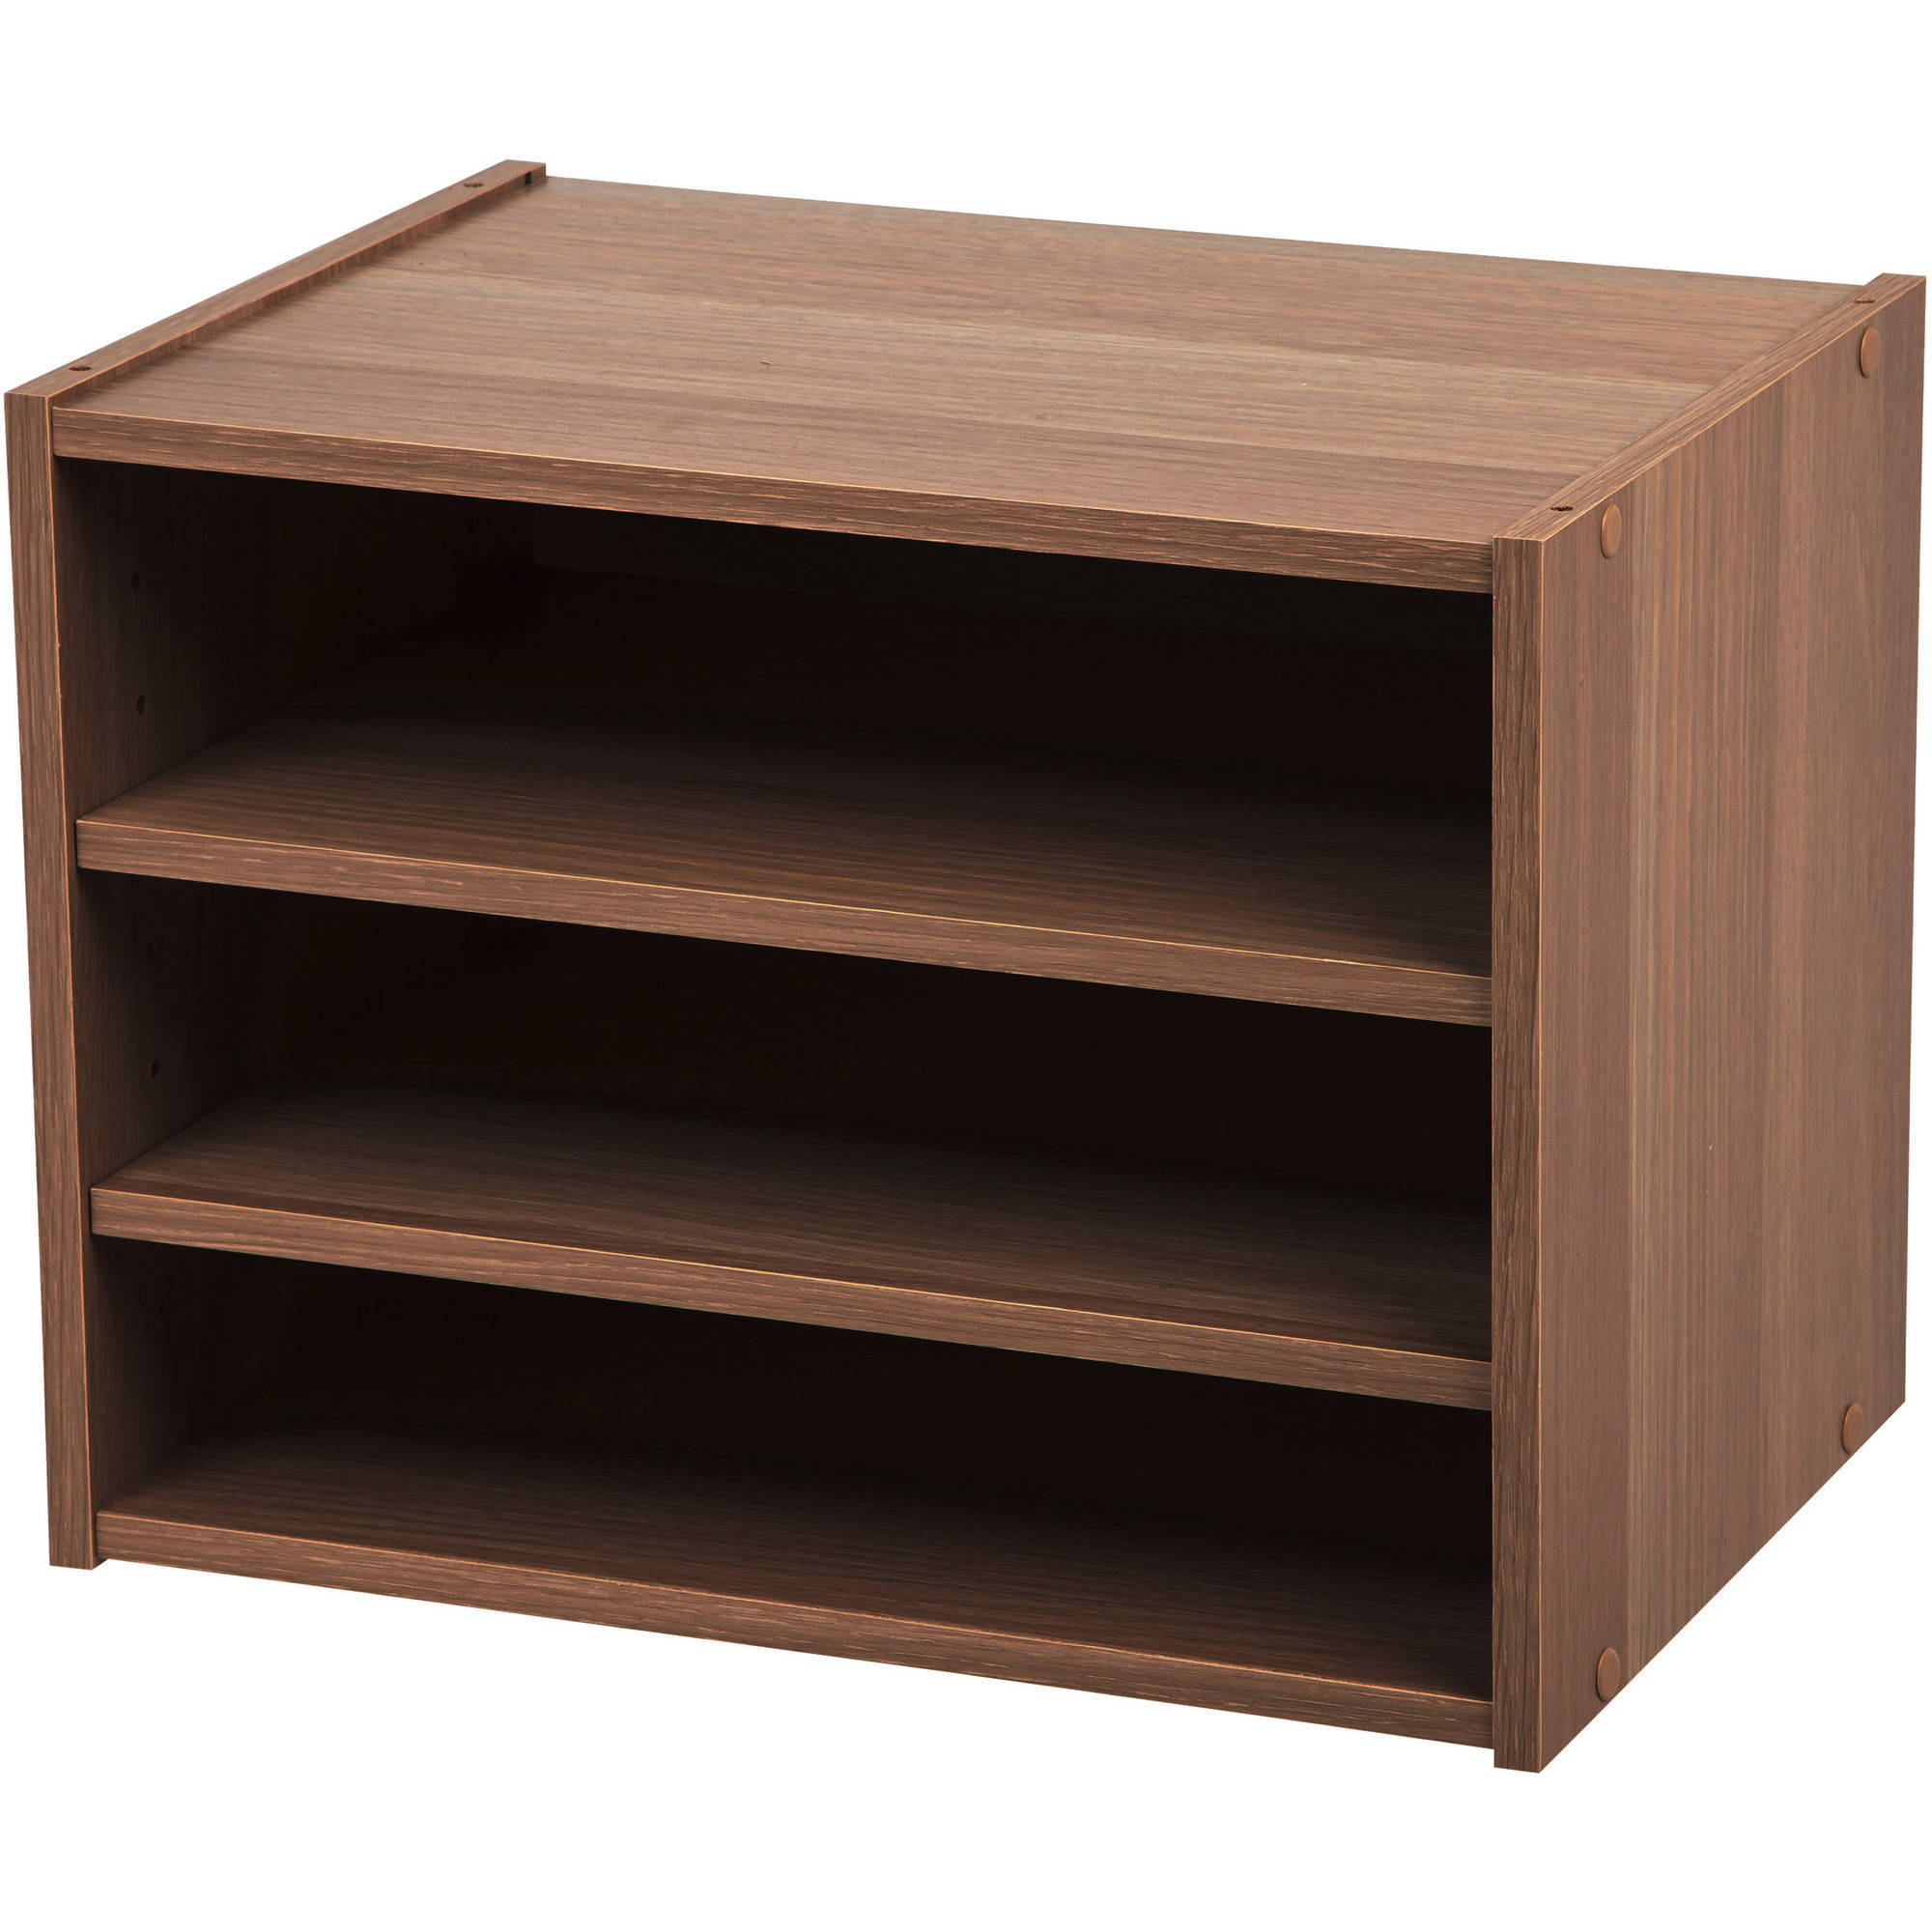 IRIS Stack Box Shelves, Dark Brown